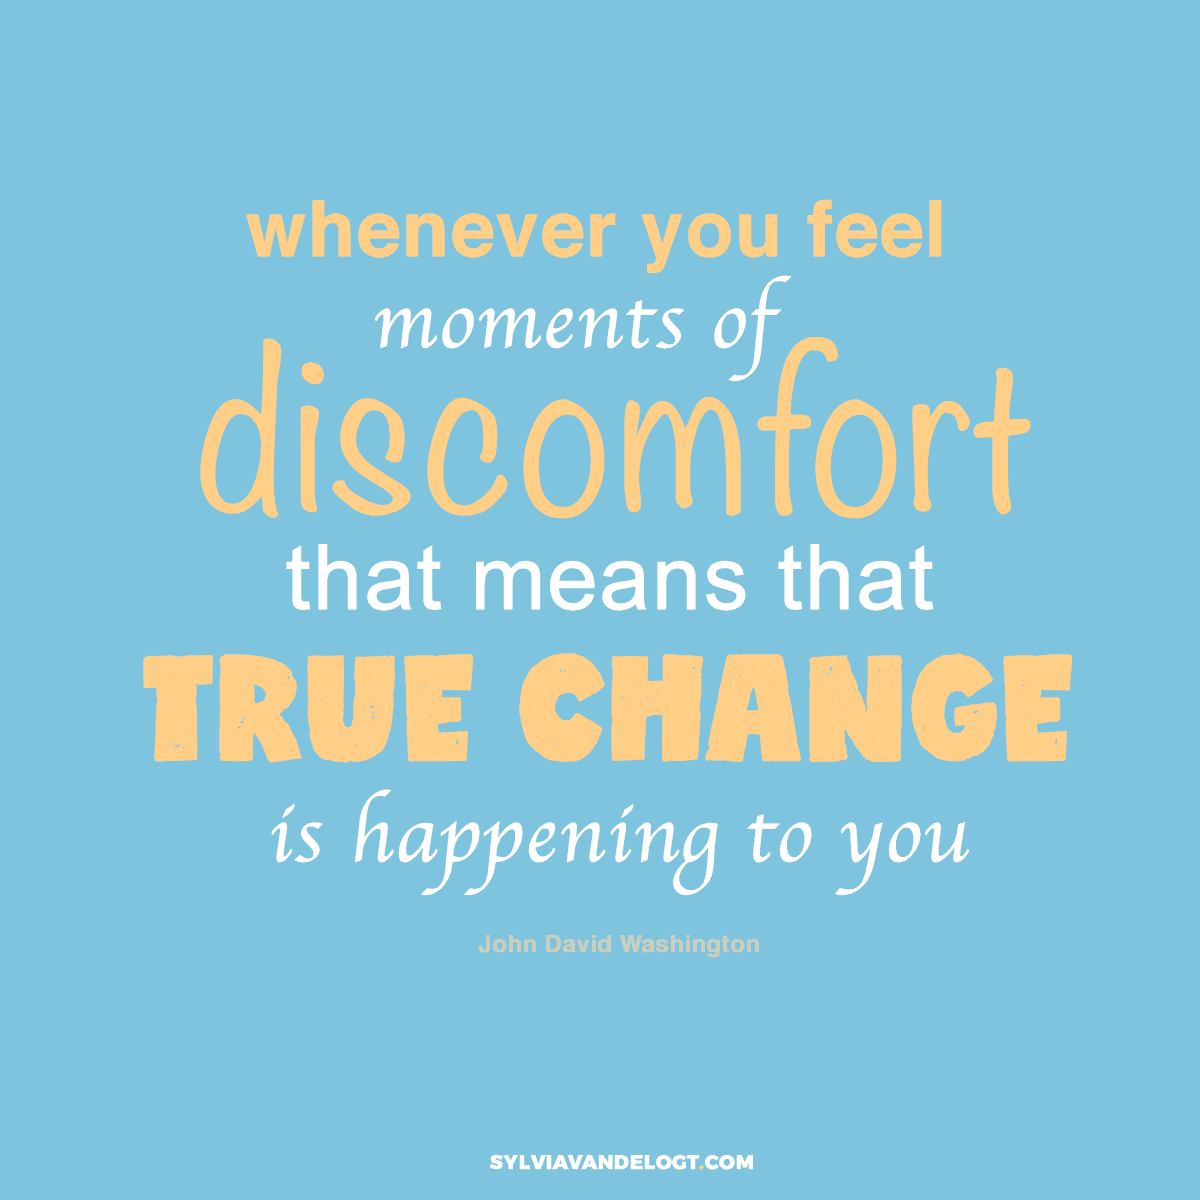 whenever you feel moments of discomfort that means that true change is happening to you | sylviavandelogt.com